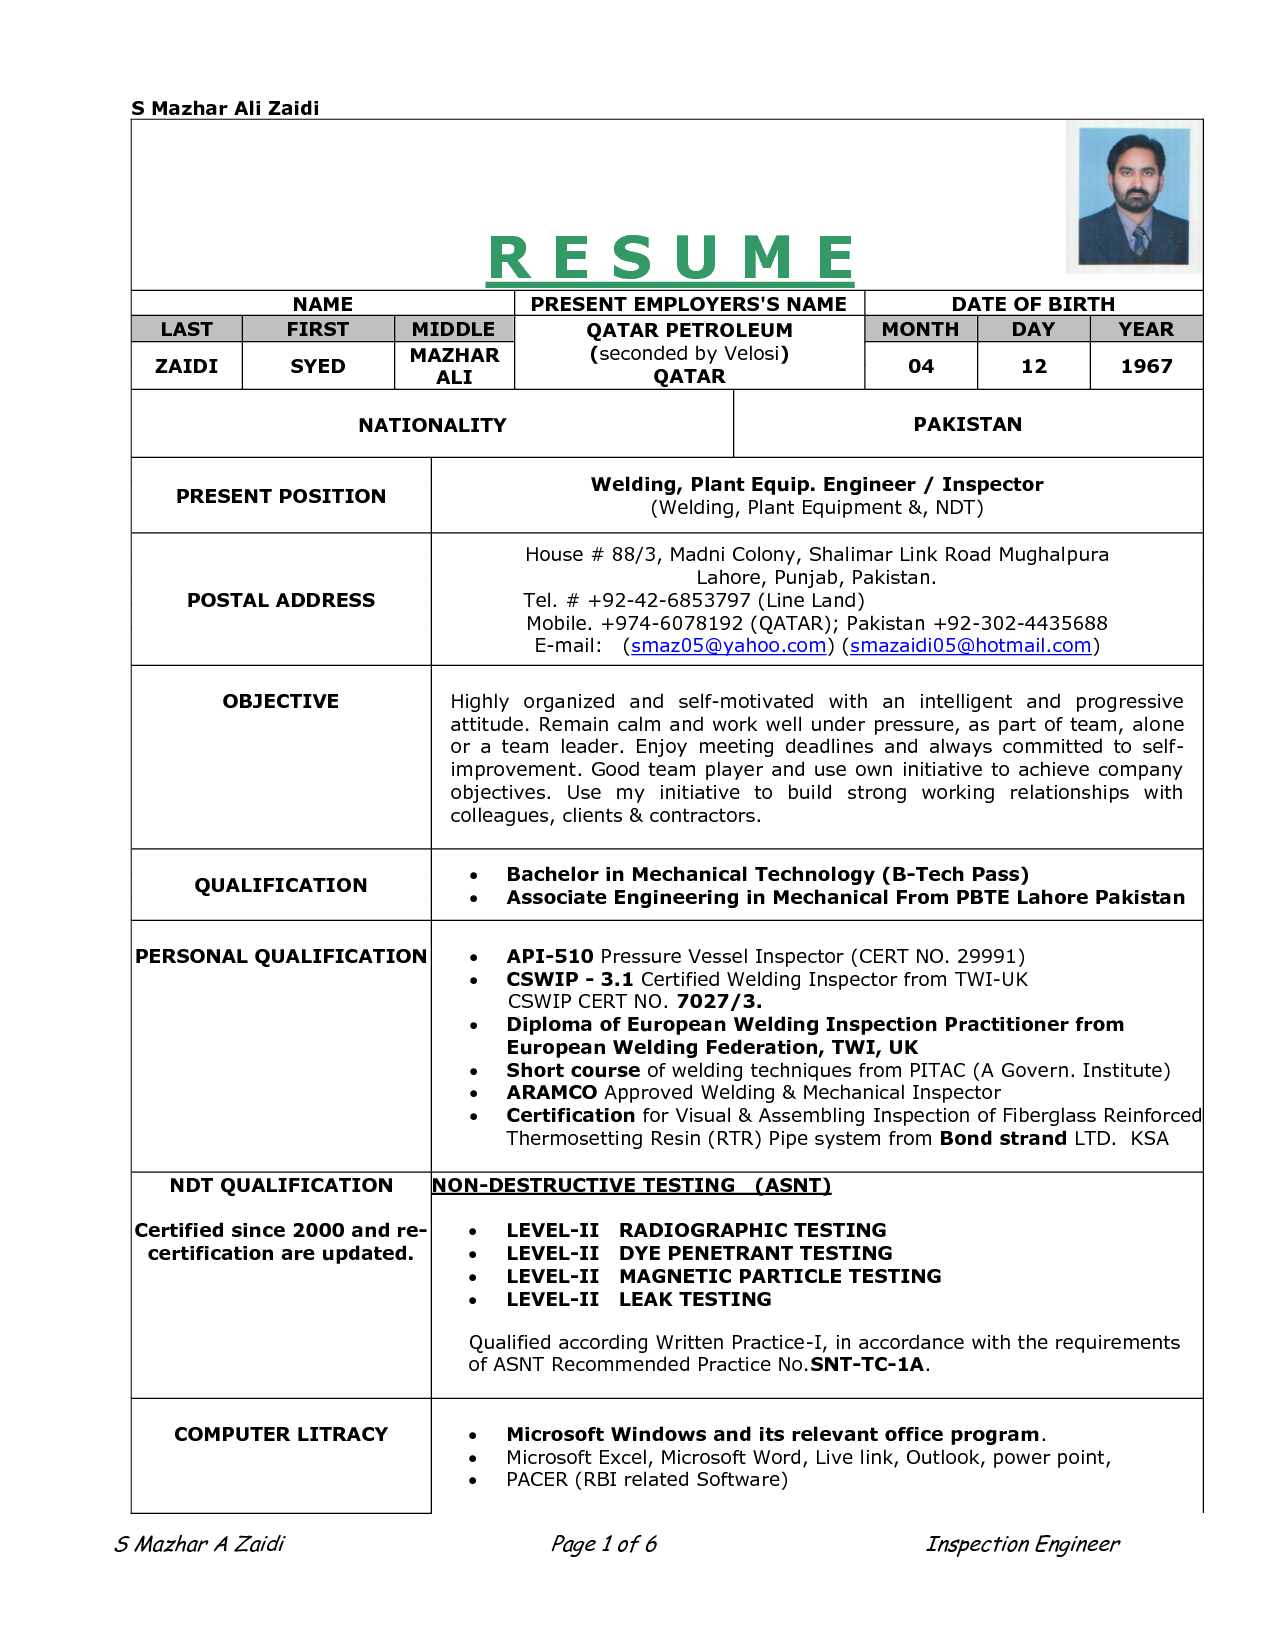 What Do Resumes Look Like Re Work Procedure Resumedoc Download Legal Documents Re Work